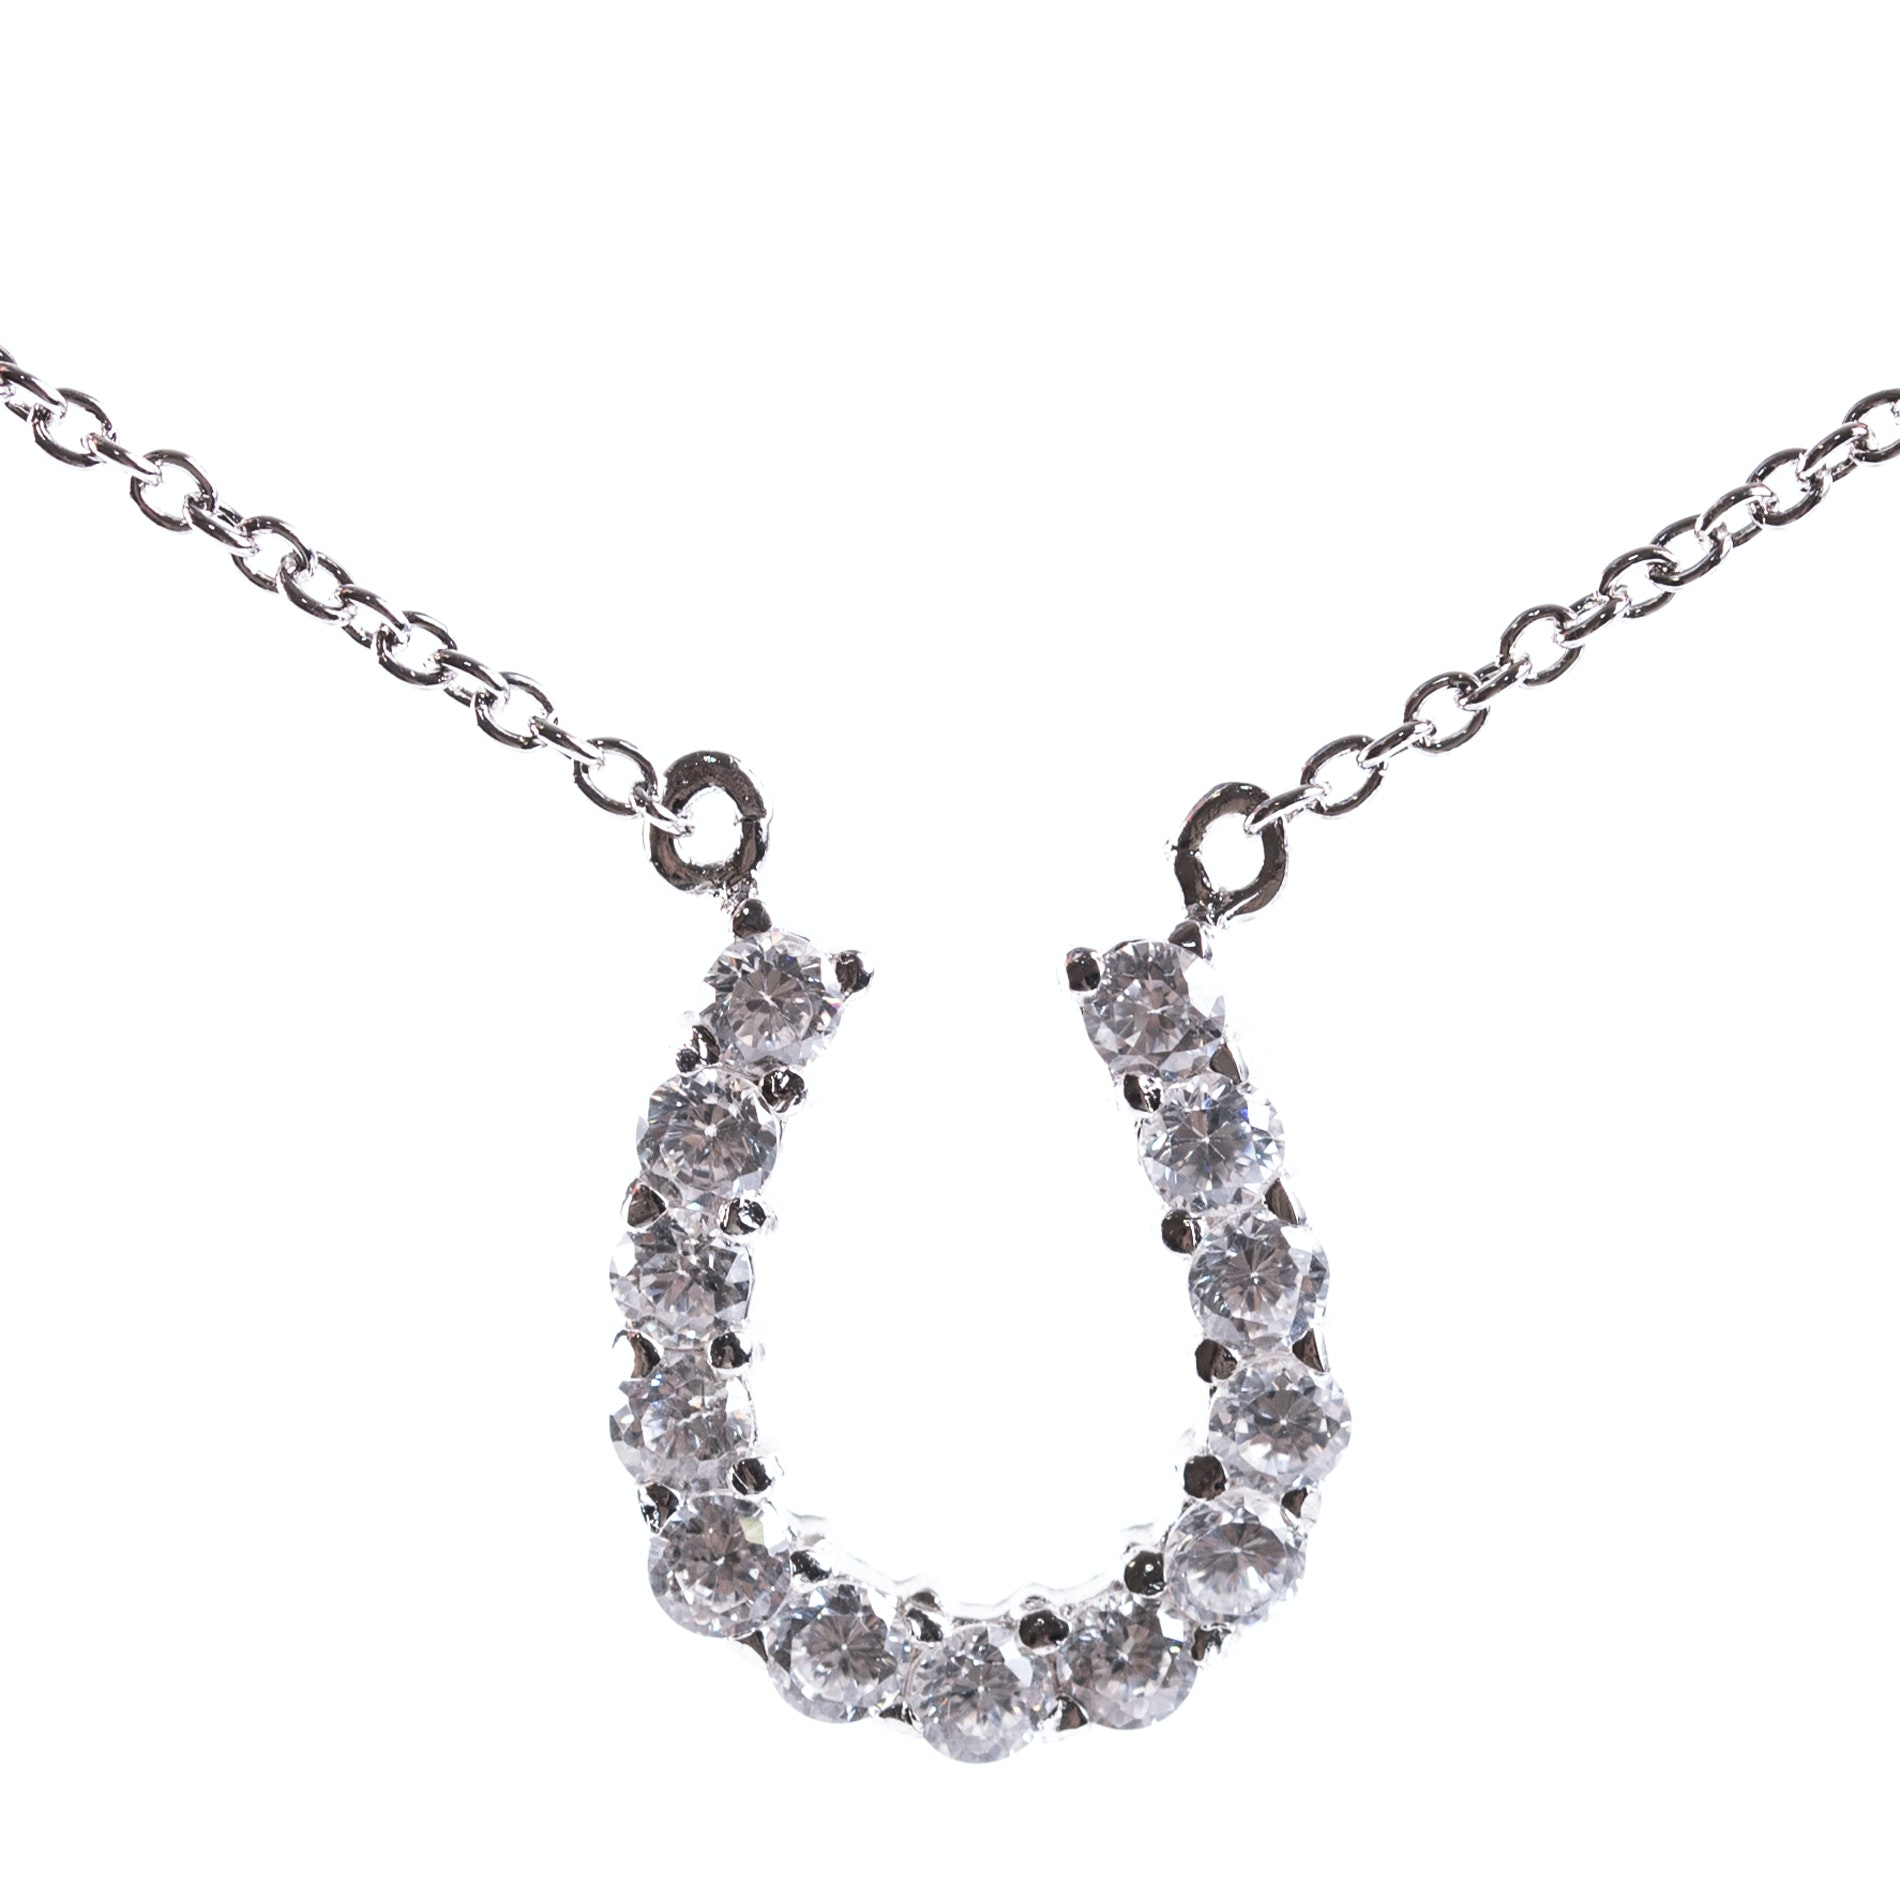 Sterling Silver and Cubic Zirconia Horseshoe Pendant Necklace